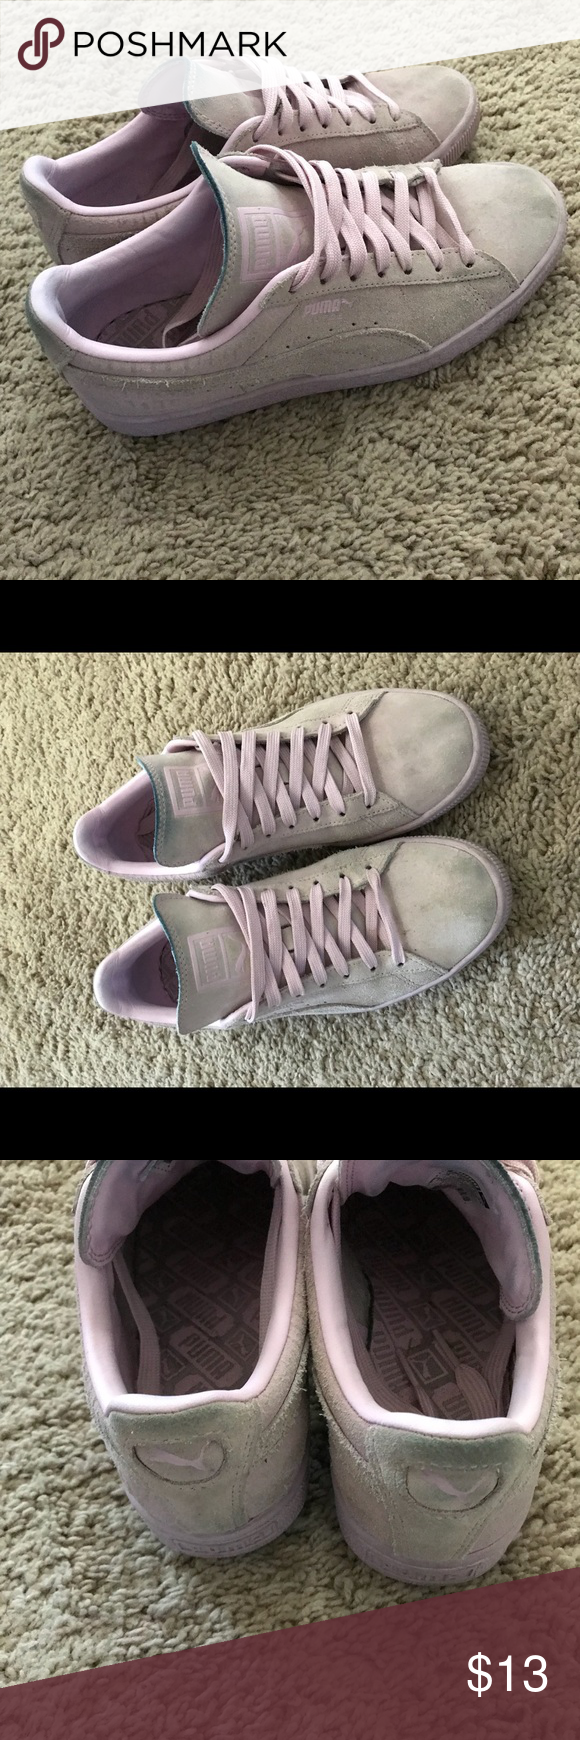 online store 61498 95028 Puma sneakers blush Used puma sneakers blush color a little discoloration  from jeans and wearing besides that good condition of you know how to clean  them ...